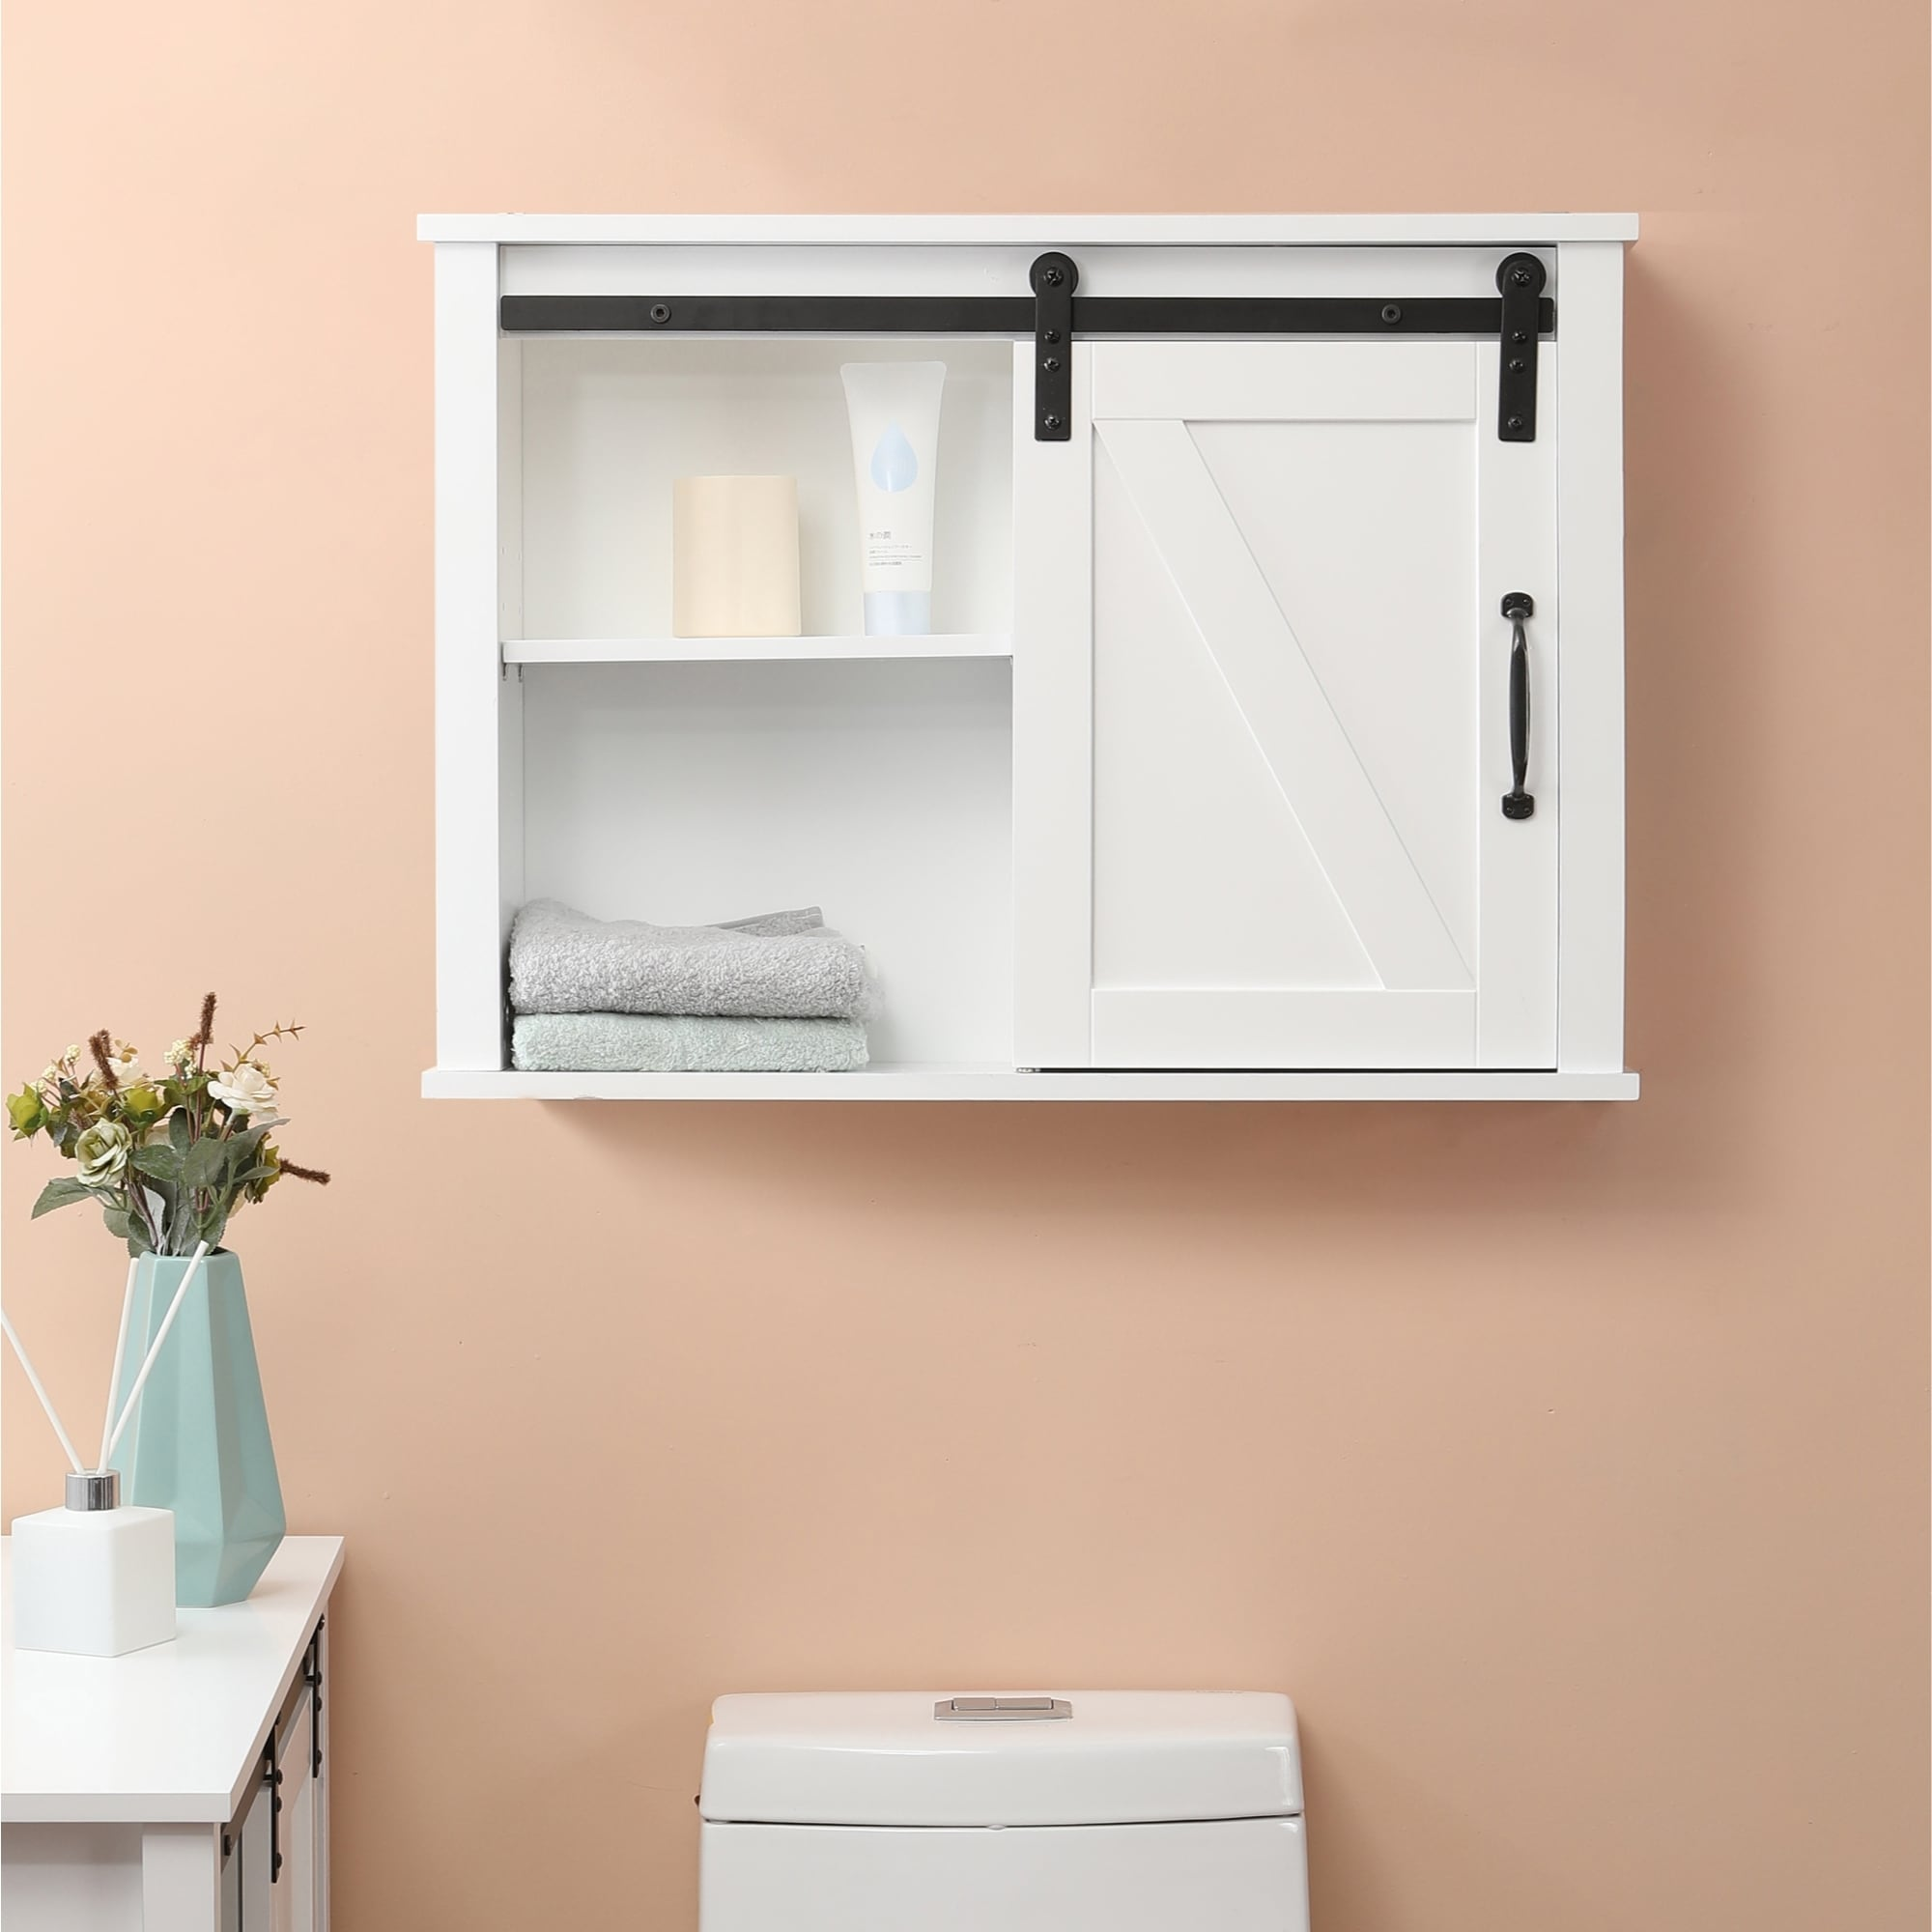 Farmhouse White Mdf Bathroom Wall Cabinet Overstock 31827194